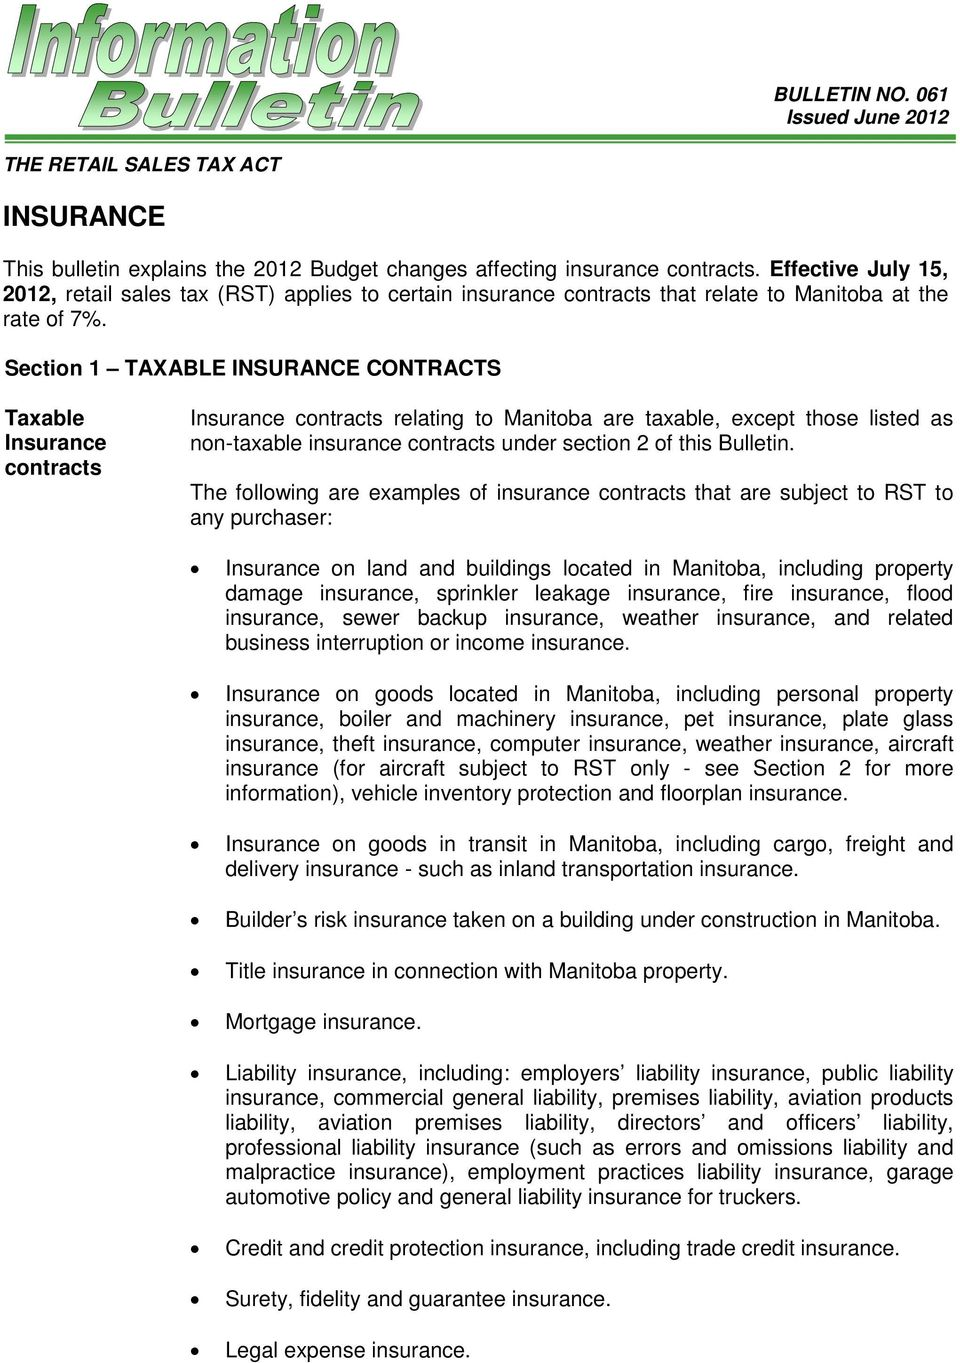 Section 1 TAXABLE INSURANCE CONTRACTS Taxable Insurance contracts Insurance contracts relating to Manitoba are taxable, except those listed as non-taxable insurance contracts under section 2 of this